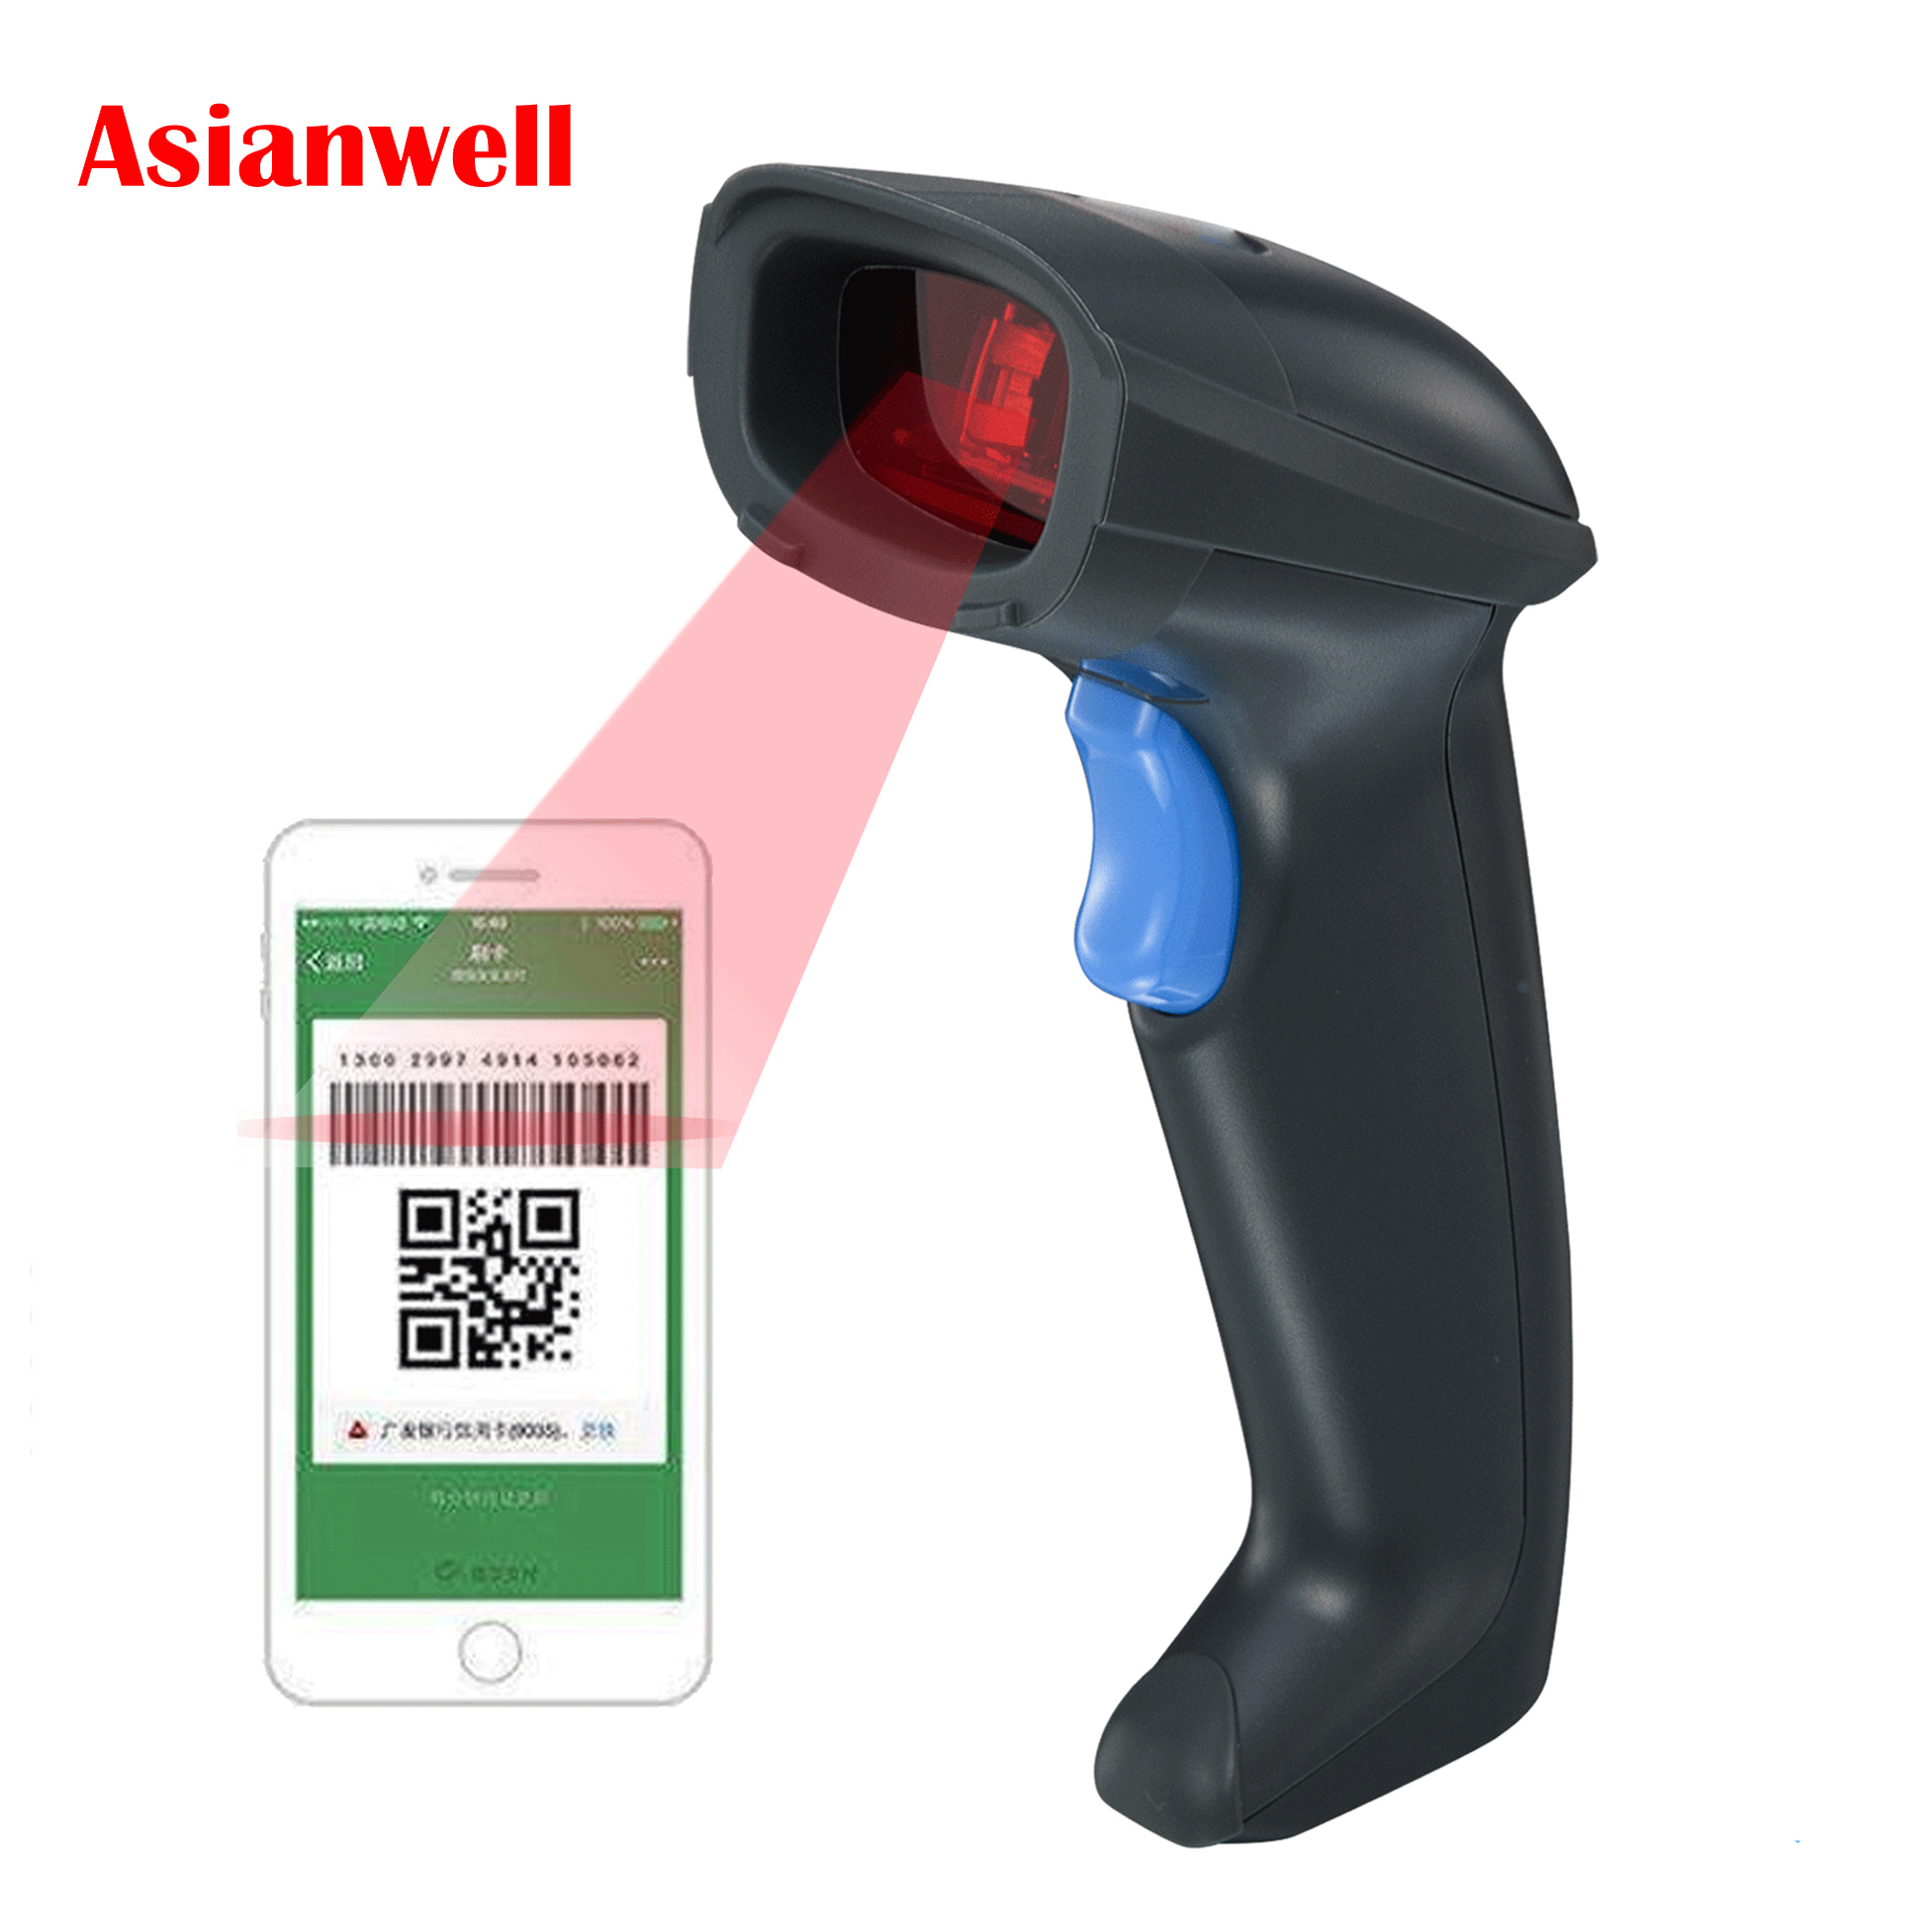 New dessert double-screen display supermarket touch pos system handheld business 1d barcode scanner android